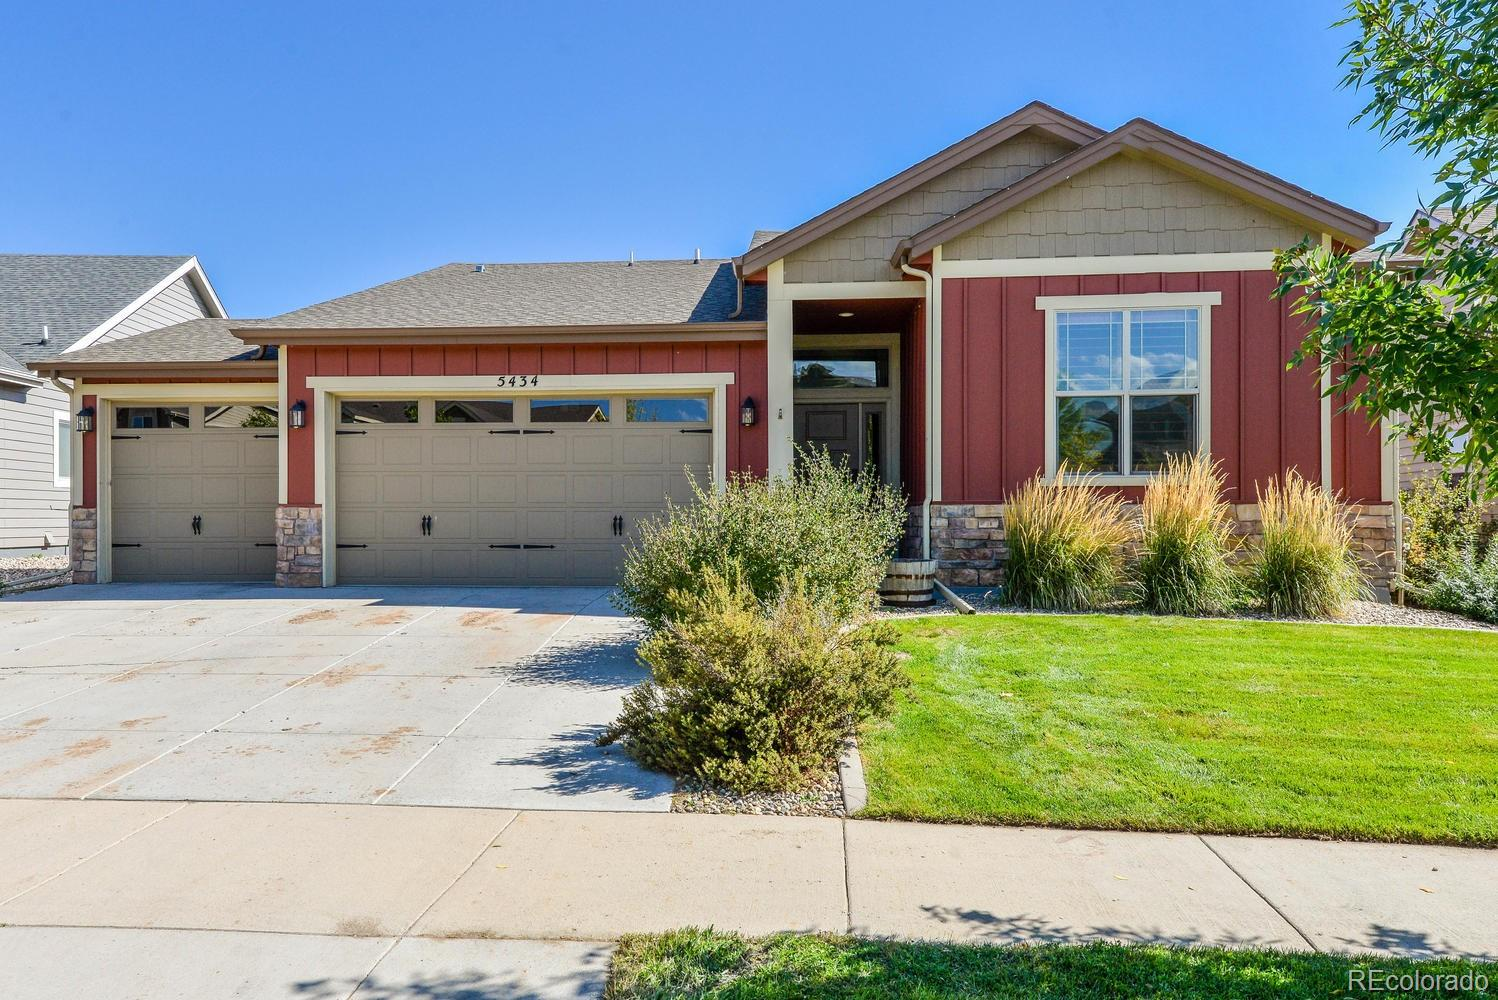 5434 Wishing Well Drive Property Photo - Timnath, CO real estate listing